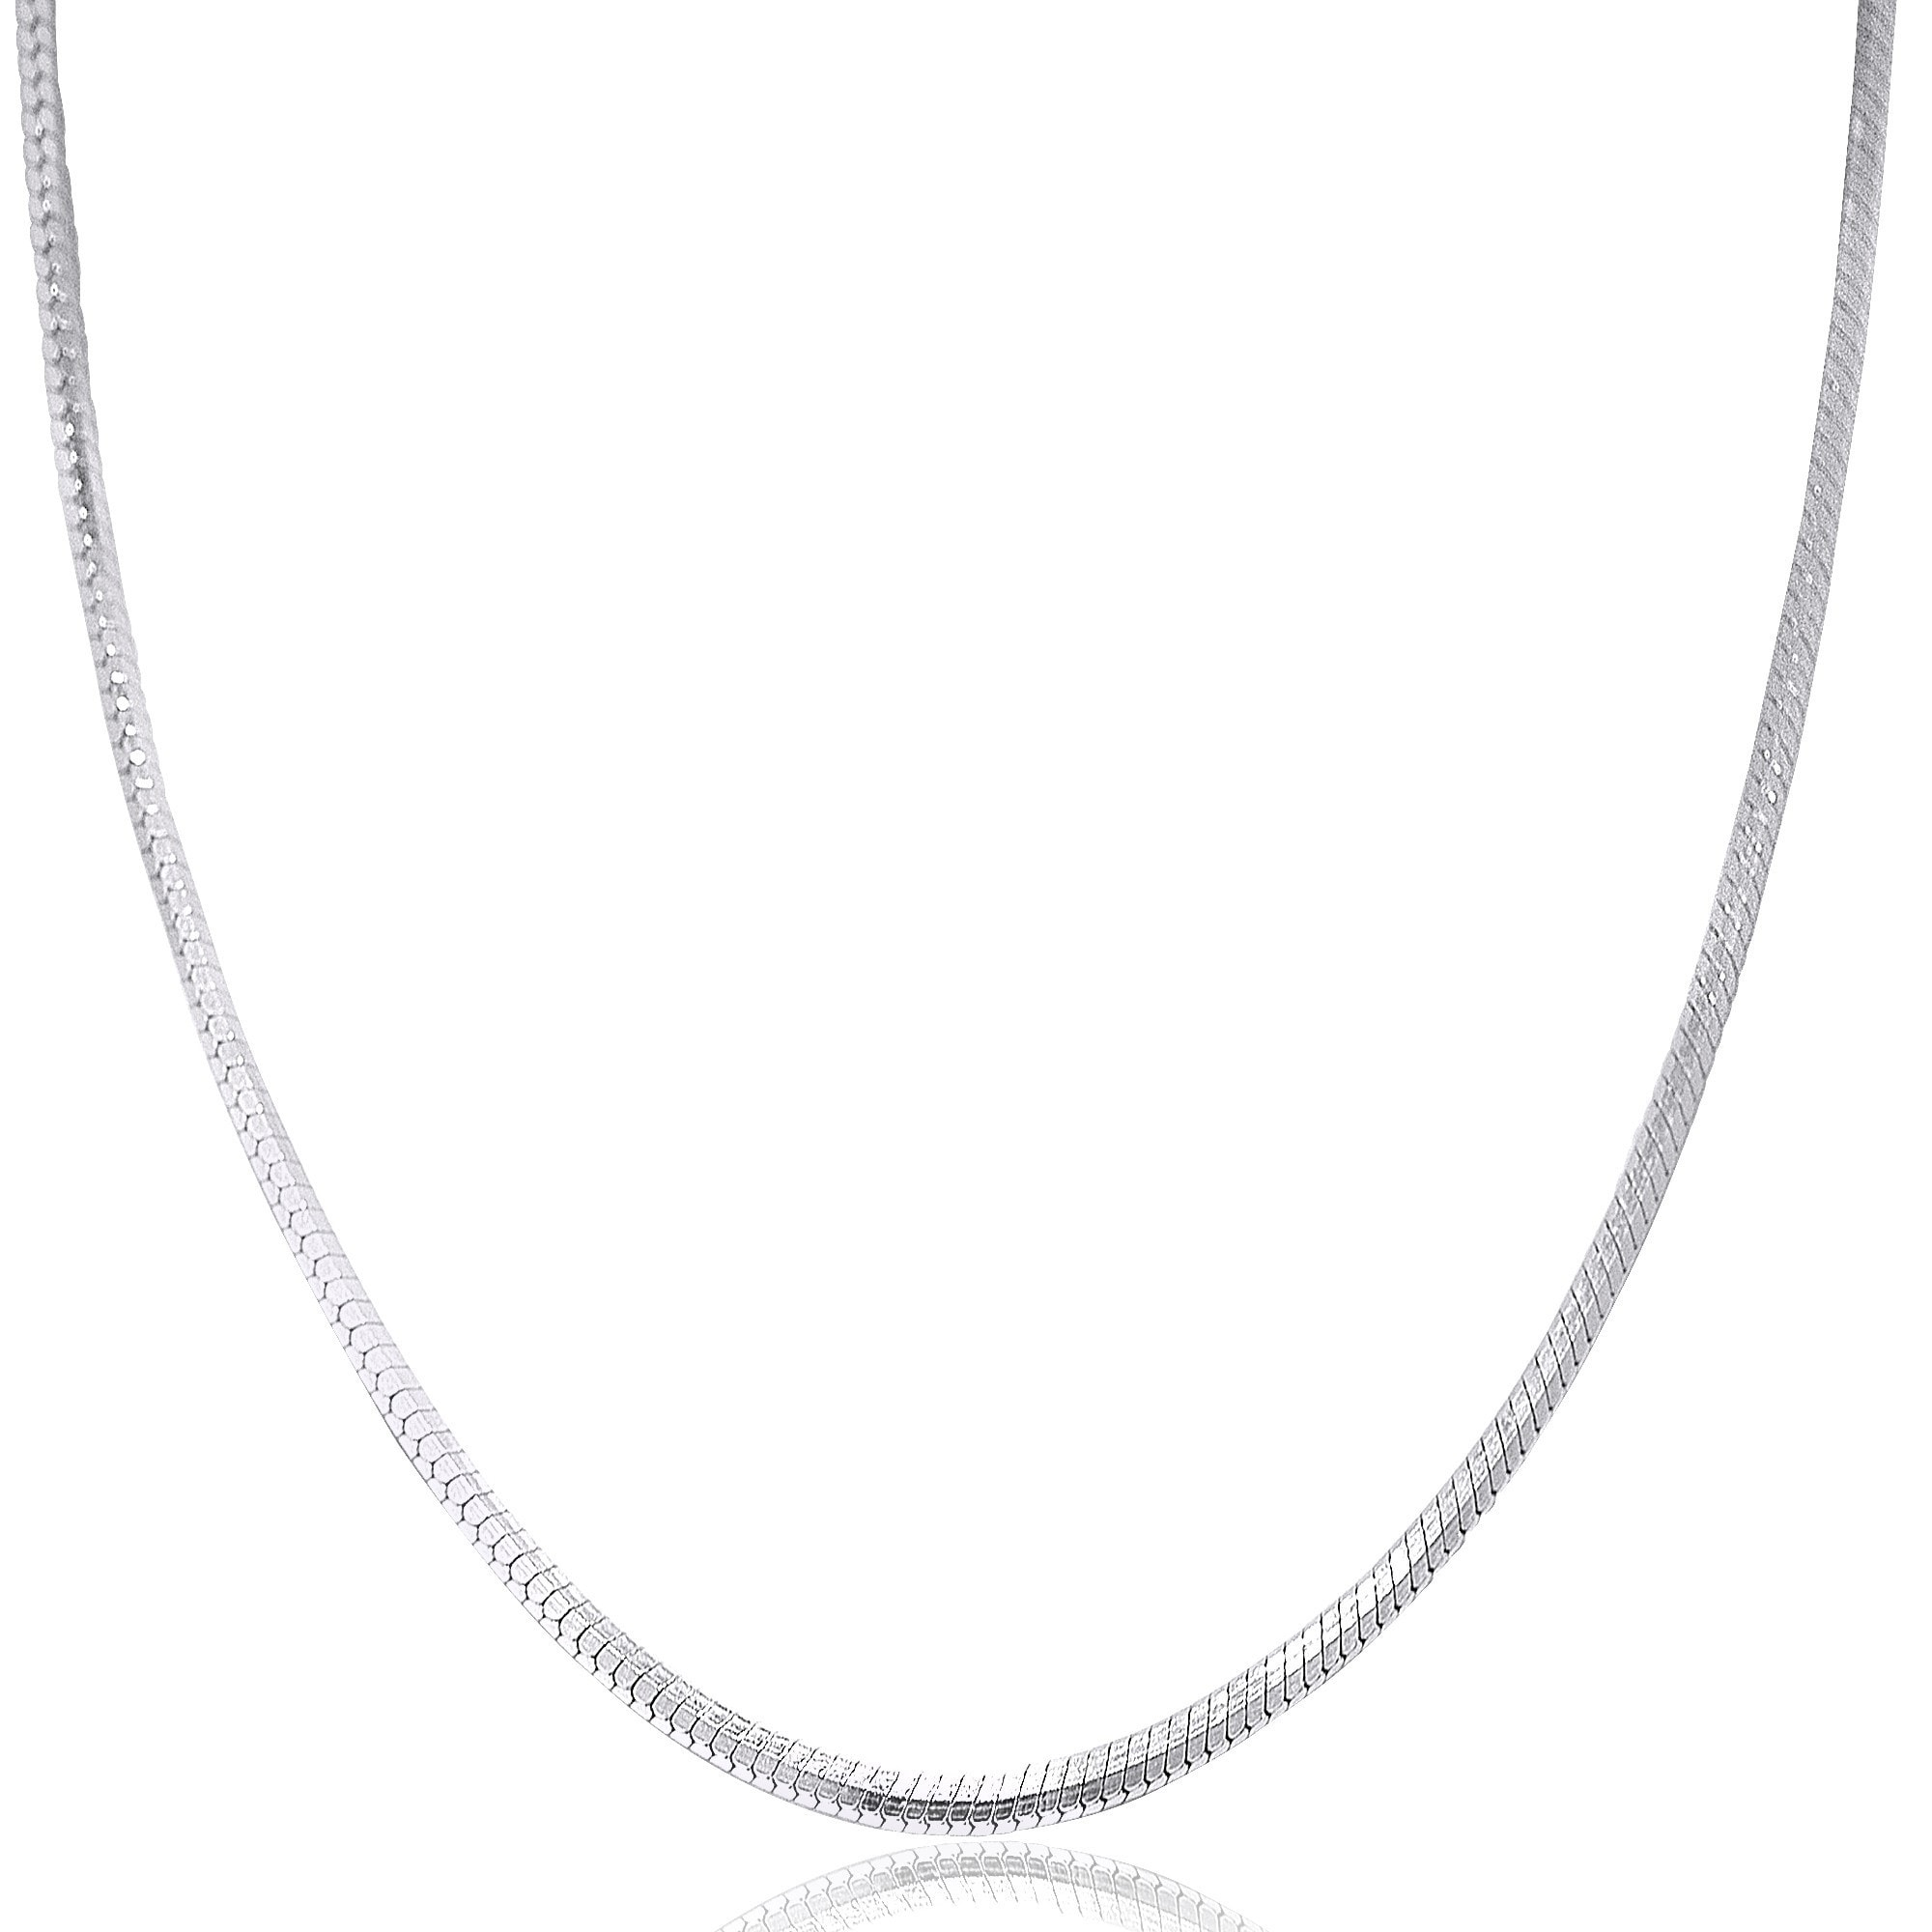 b43f5b1fa95 Shop Pori Jewelers 925 Sterling Silver High Polished 0.9 MM Square Snake  020 Chain Necklace - On Sale - Free Shipping On Orders Over $45 - Overstock  - ...